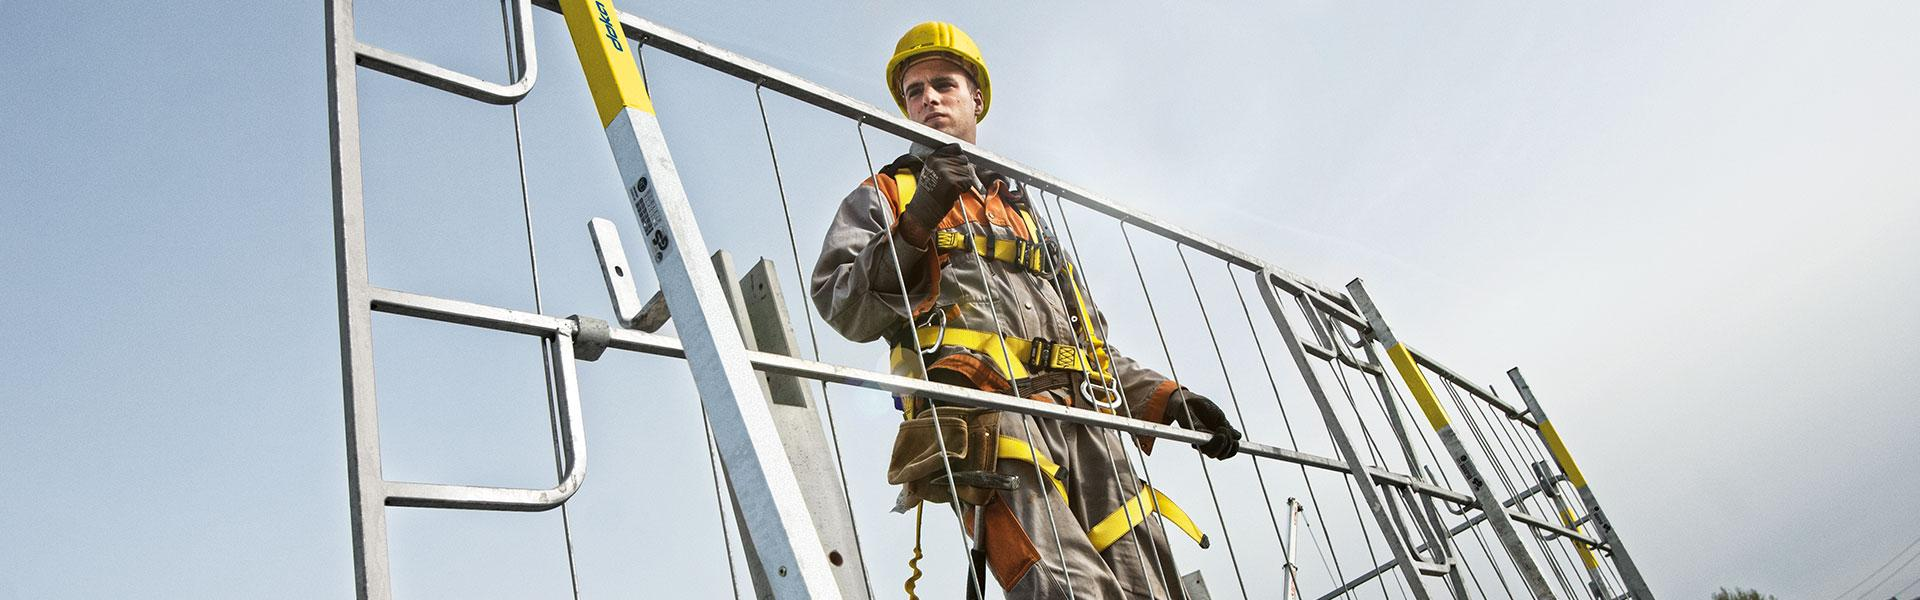 worker handling edge protection system XP